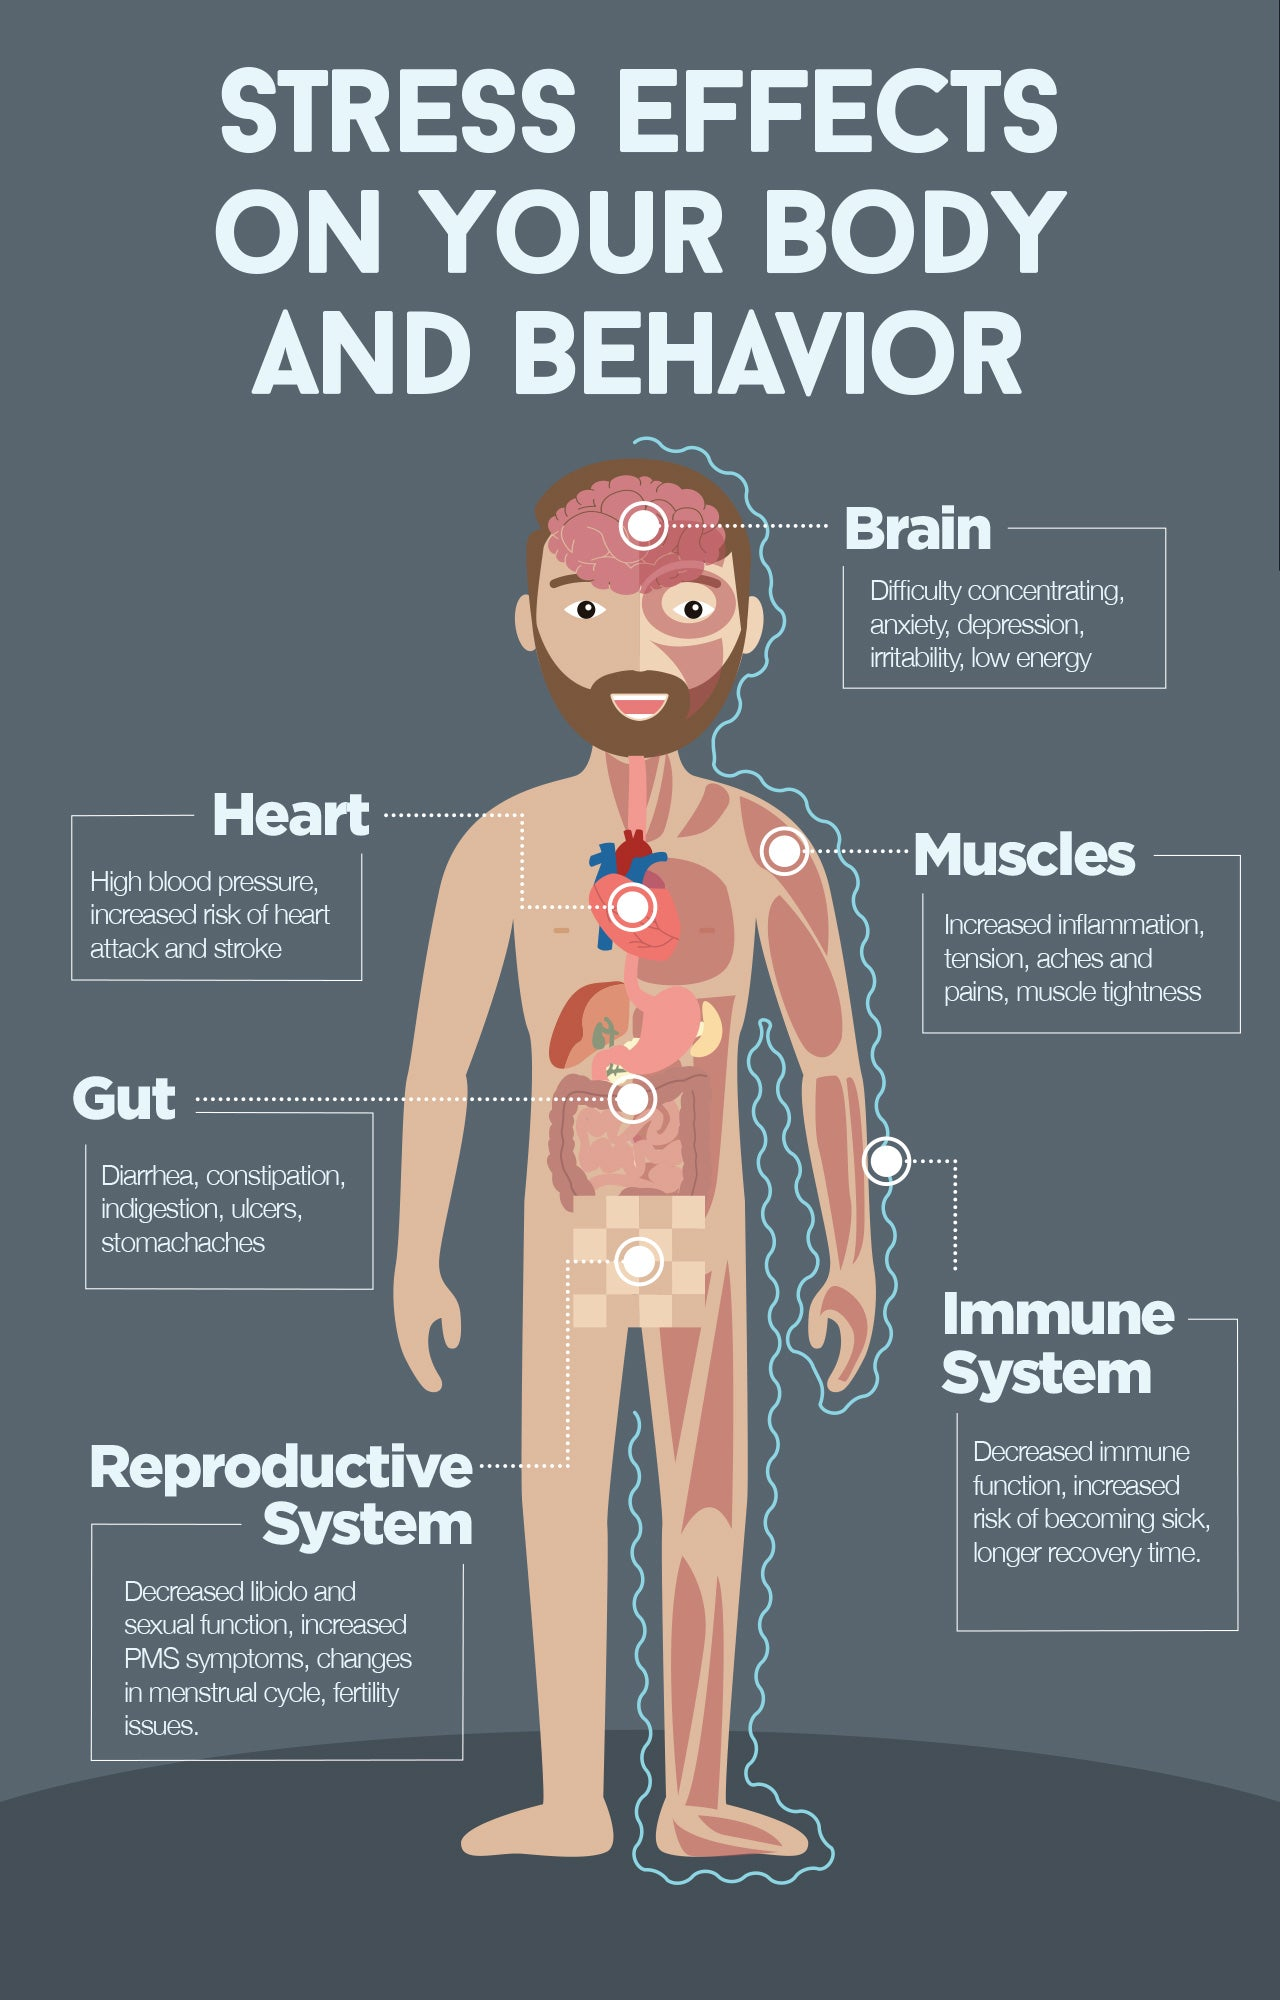 Stress effects on your body and behavior